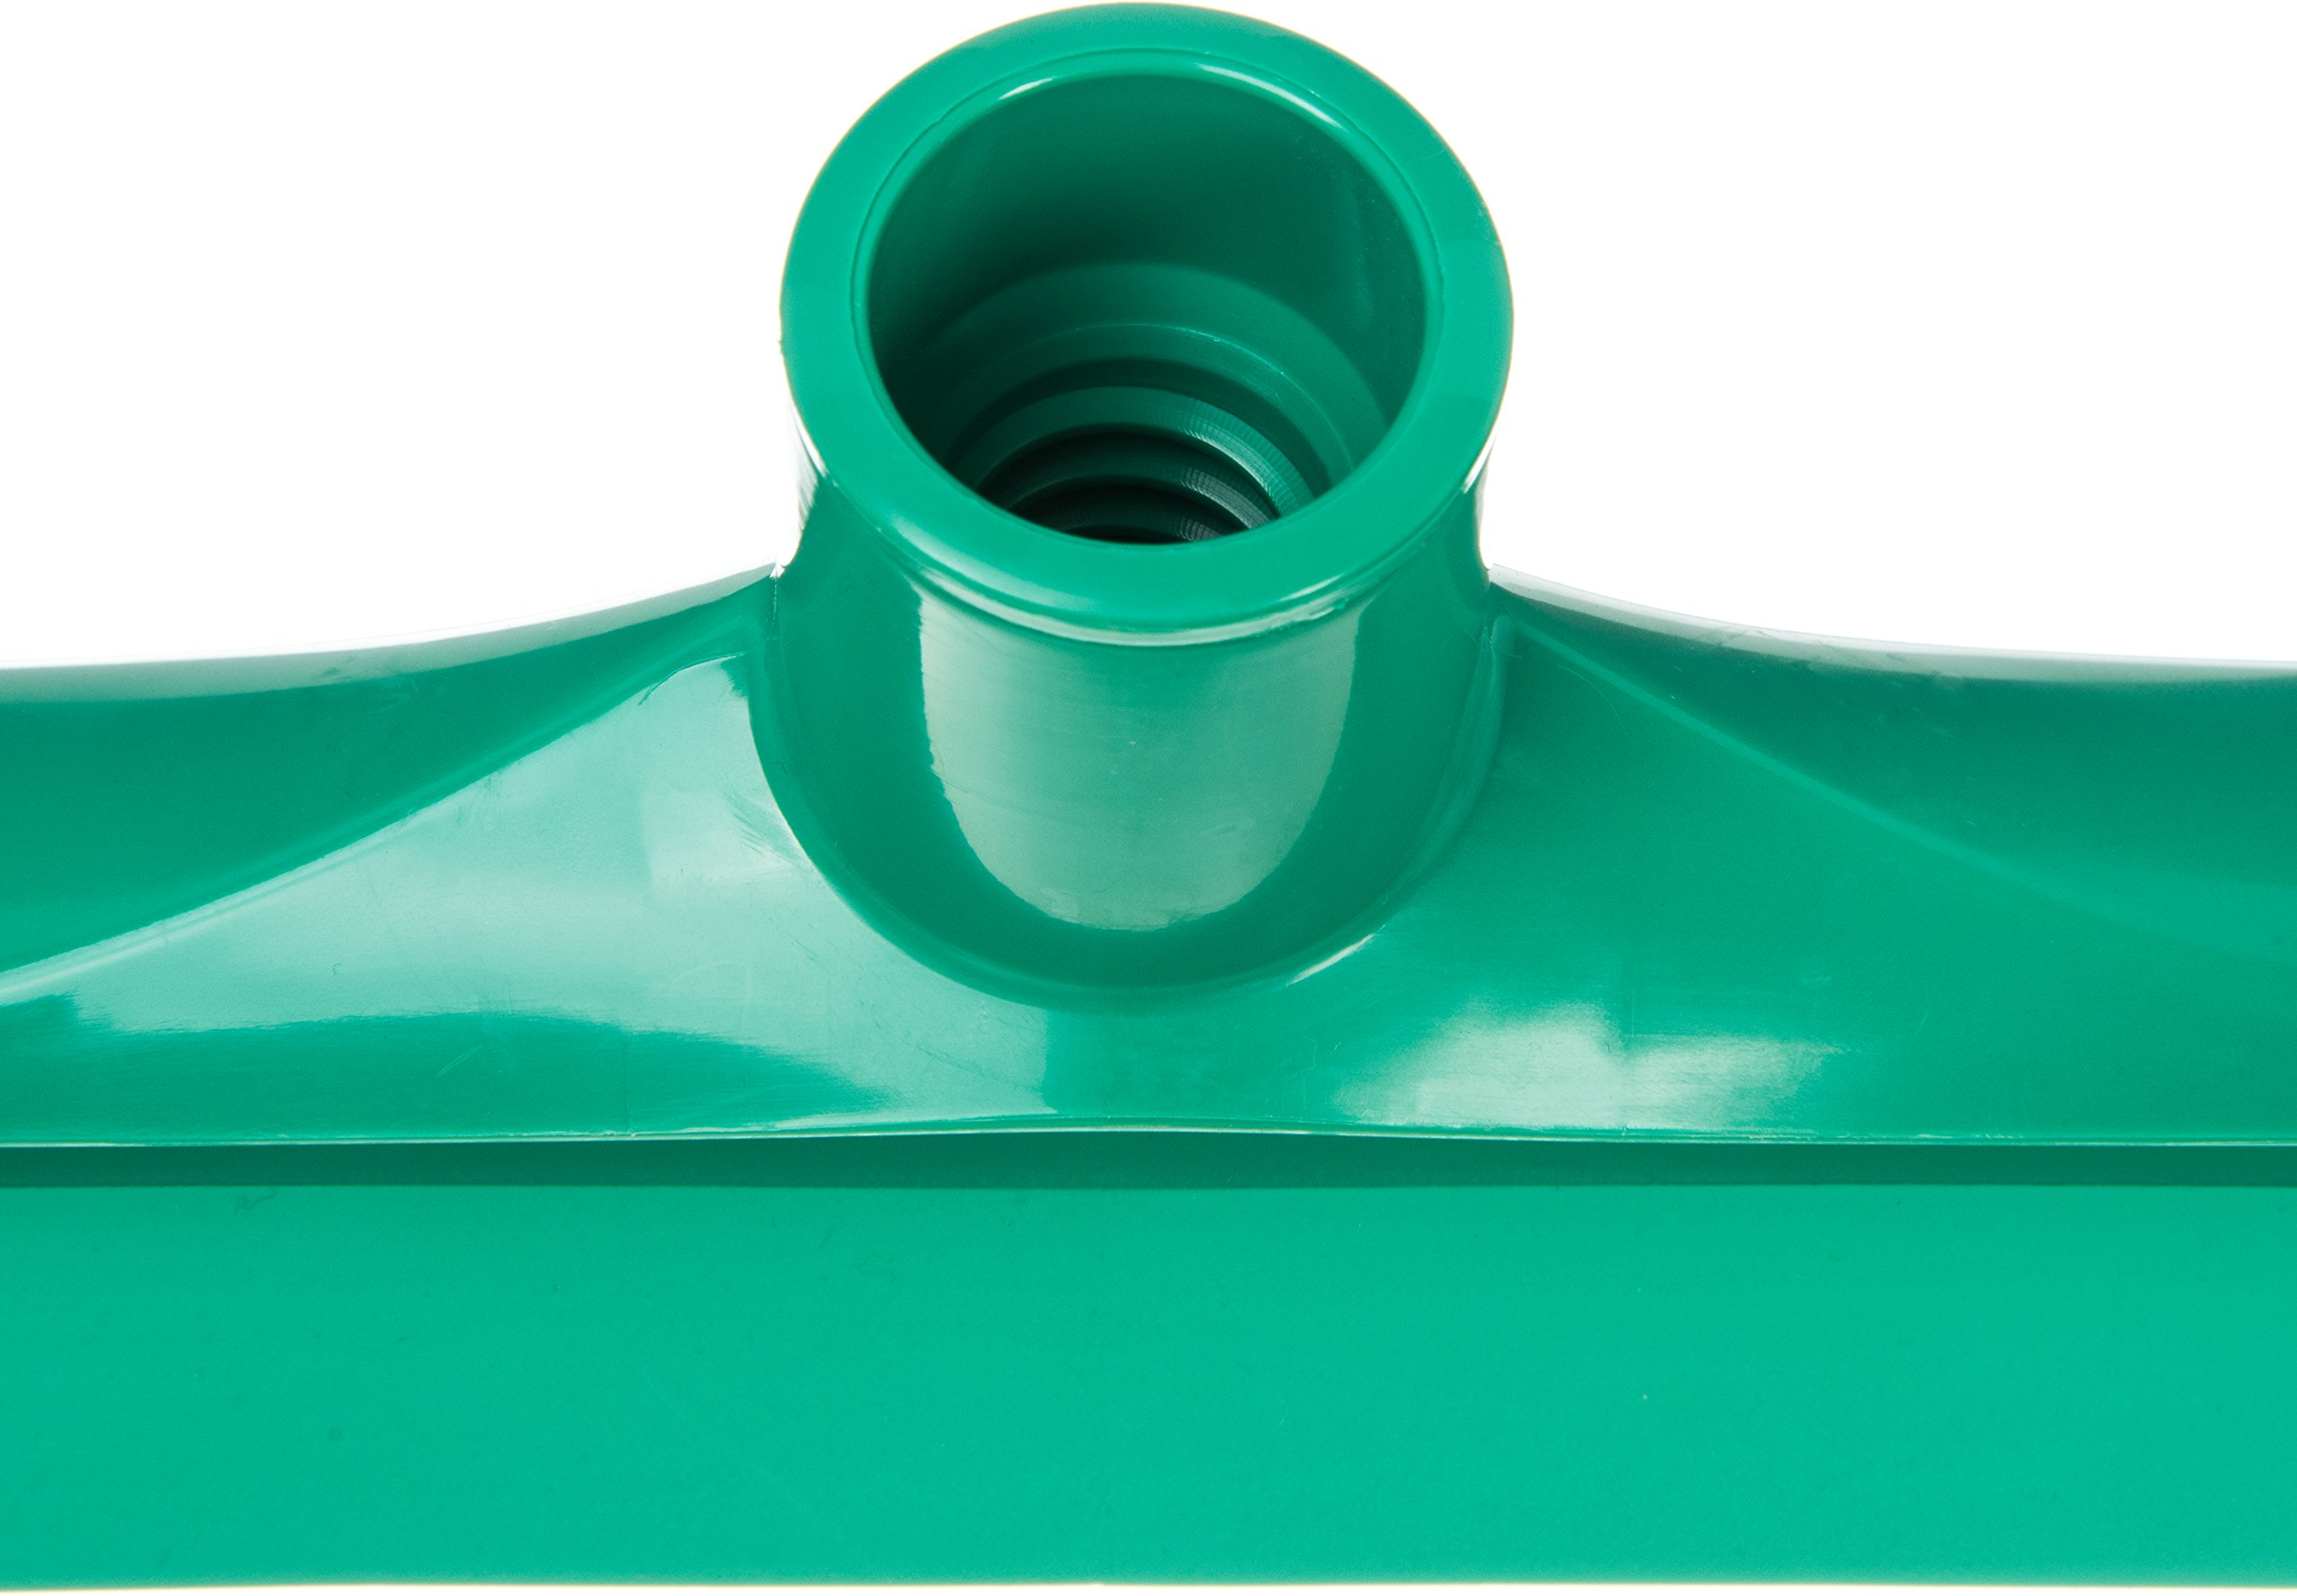 Carlisle 3656809 Solid One-Piece Foam Rubber Head Floor Squeegee, 24'' Length, Green by Carlisle (Image #5)